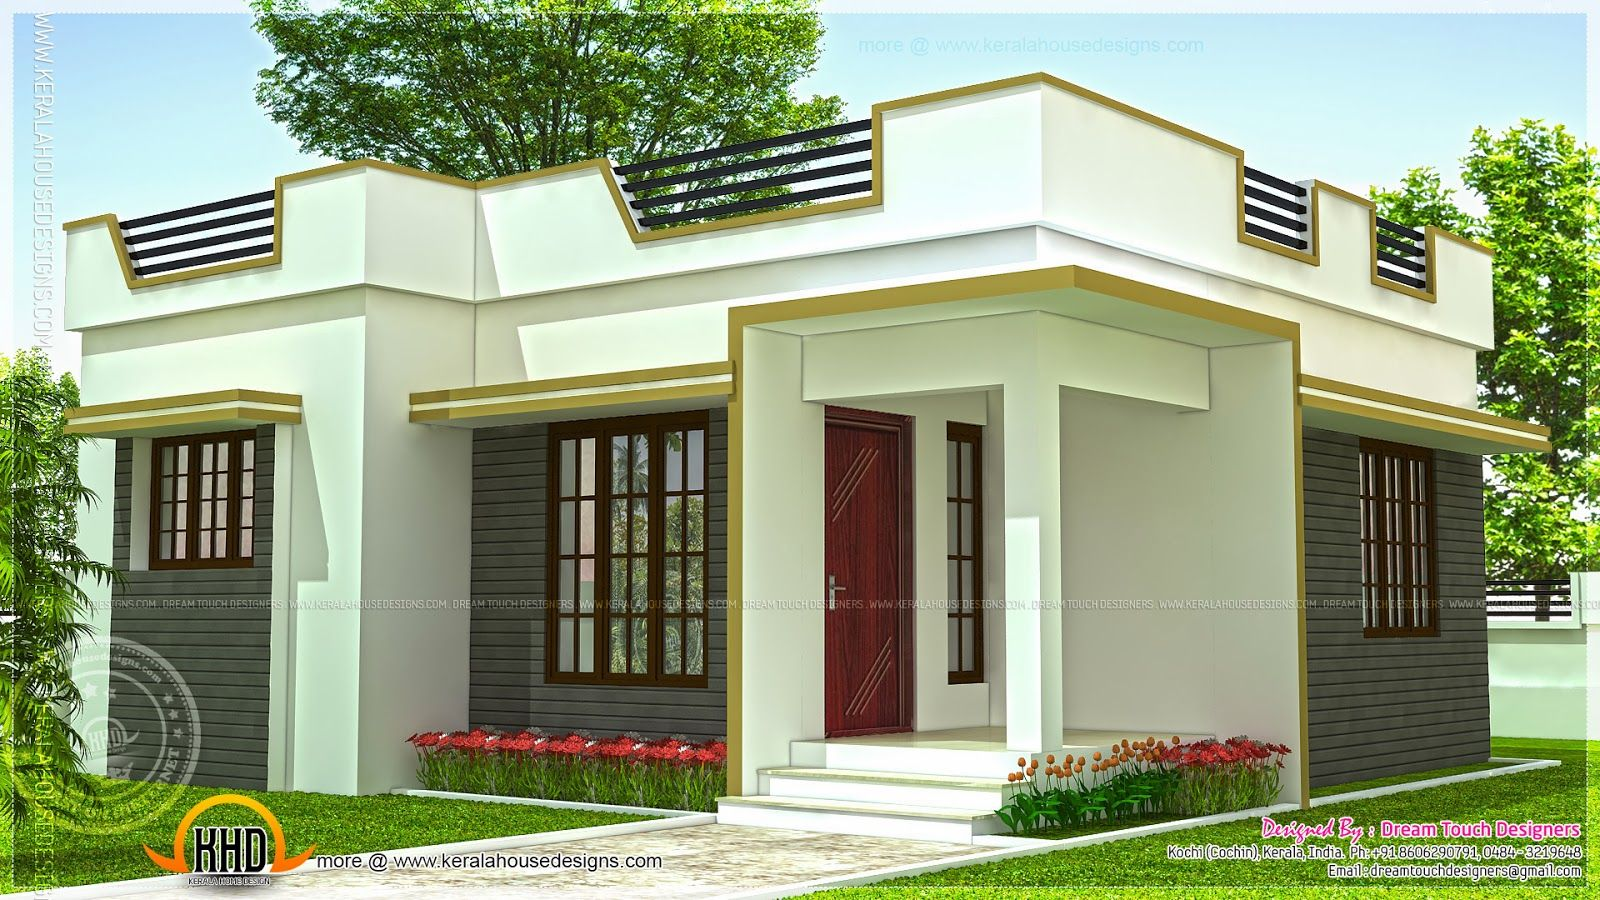 lately-21-small-house-design-kerala-small-house-kerala (1600